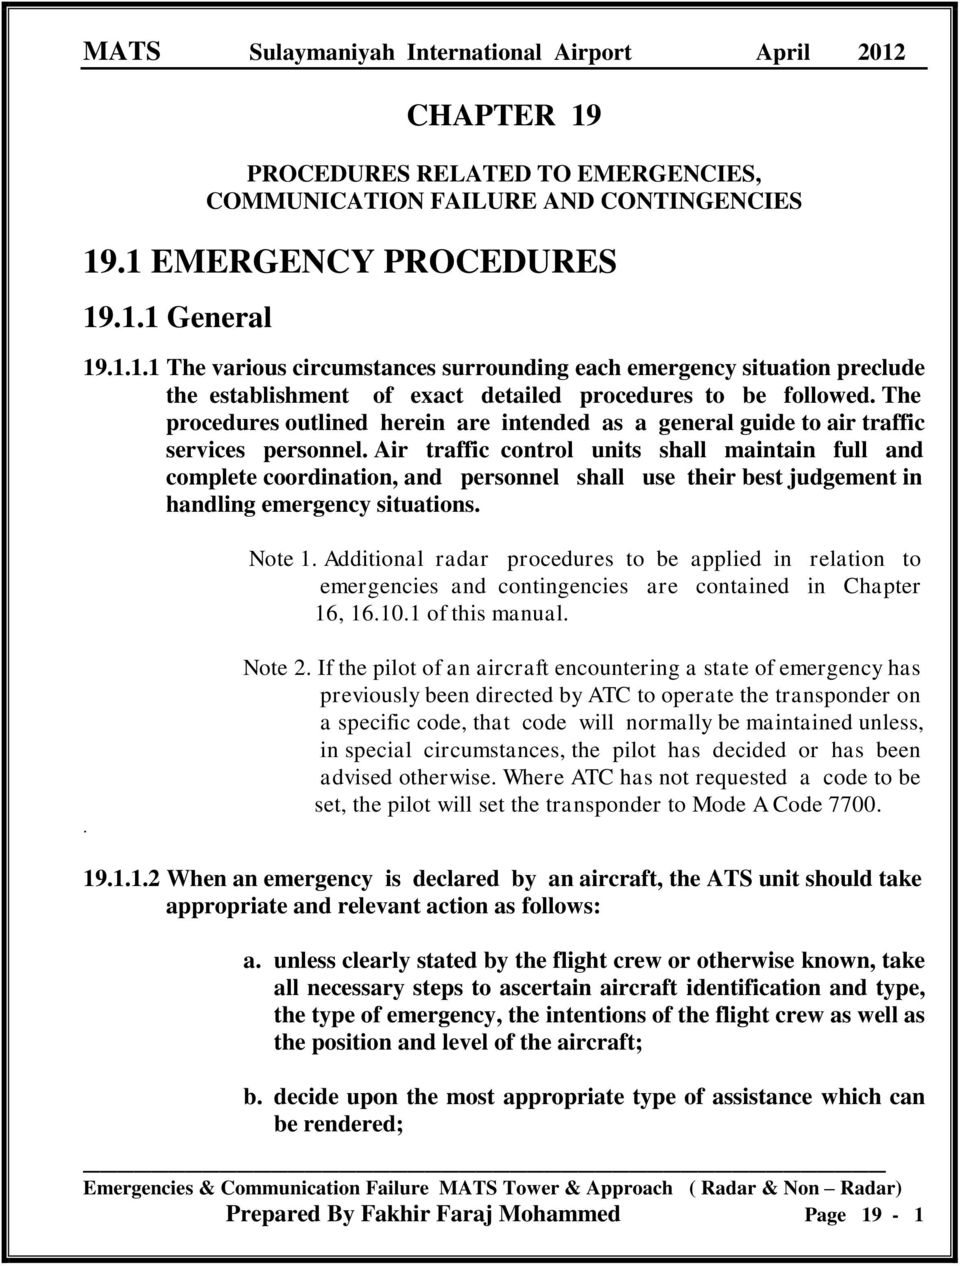 Air traffic control units shall maintain full and complete coordination, and personnel shall use their best judgement in handling emergency situations. Note 1.